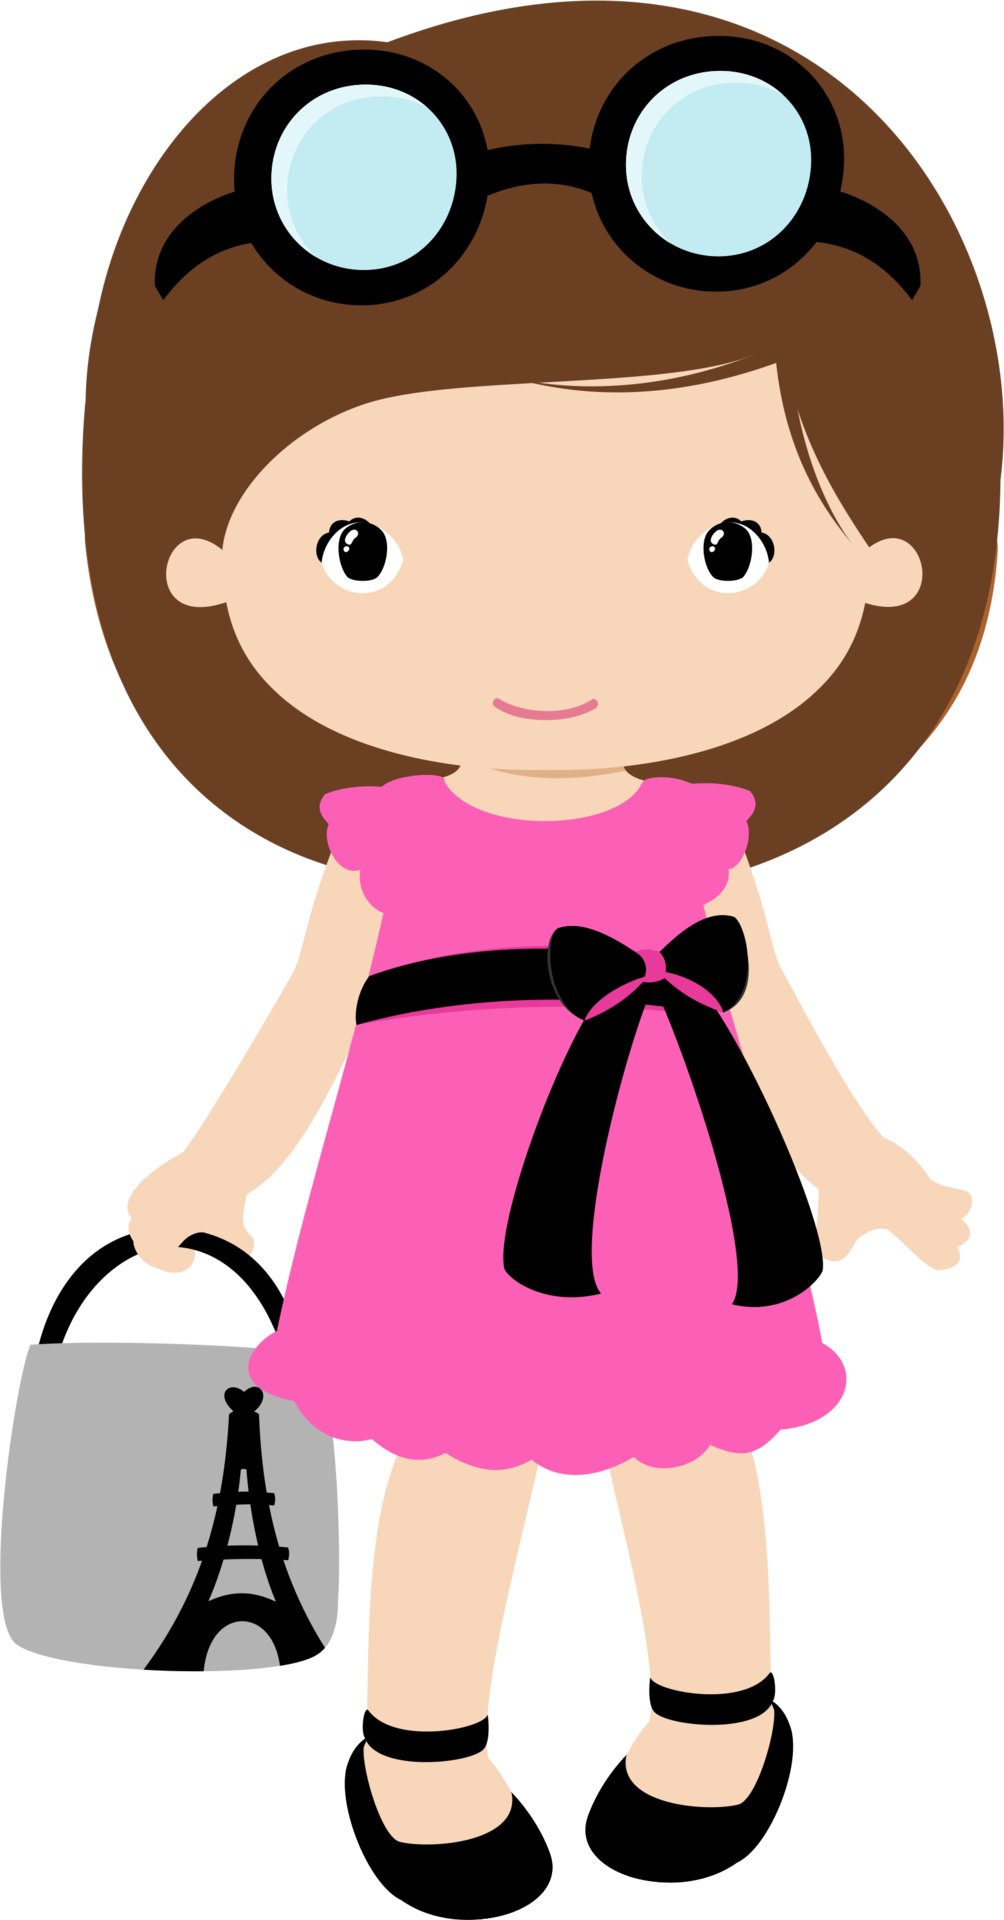 Princess for kids at. Number 3 clipart girly